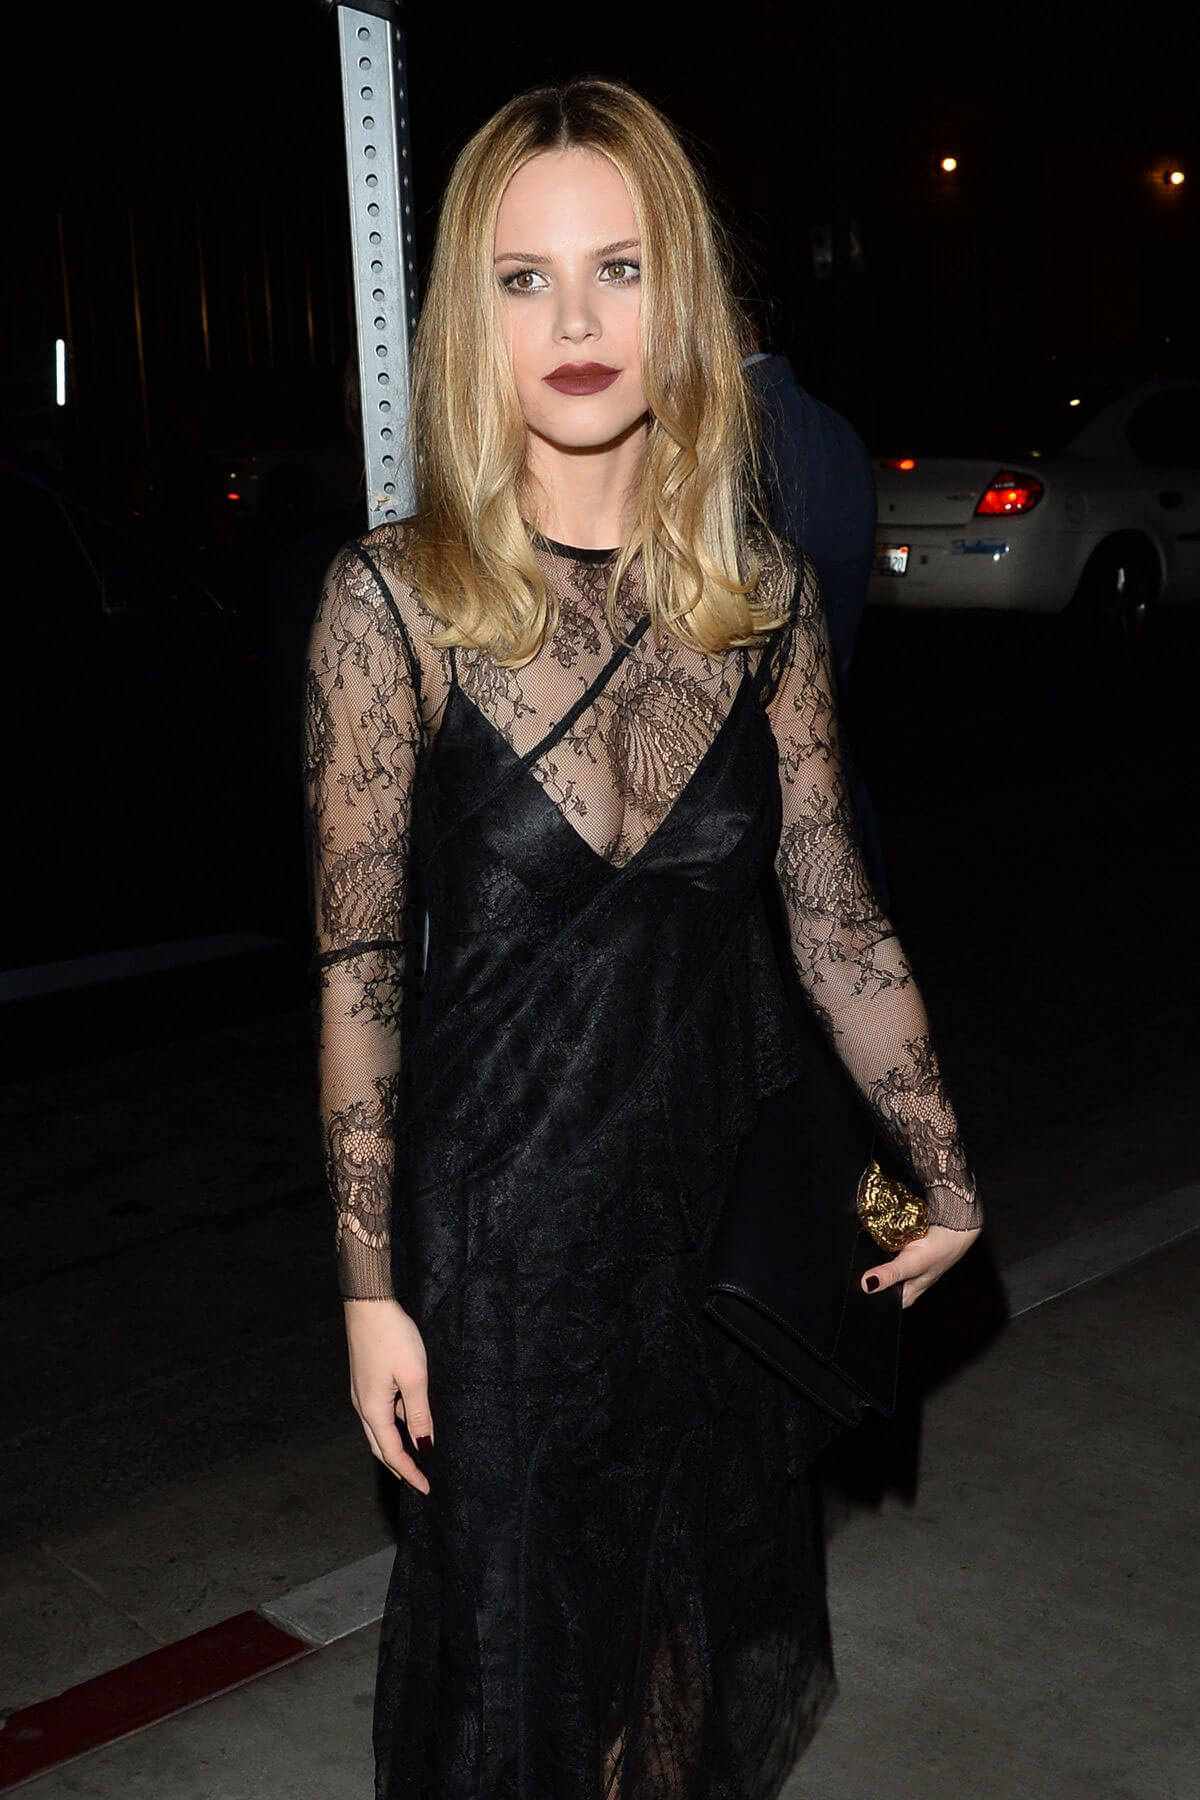 Halston Sage Stills at Fred Hollows Foundation Inaugural Fundraising Gala in Los Angeles